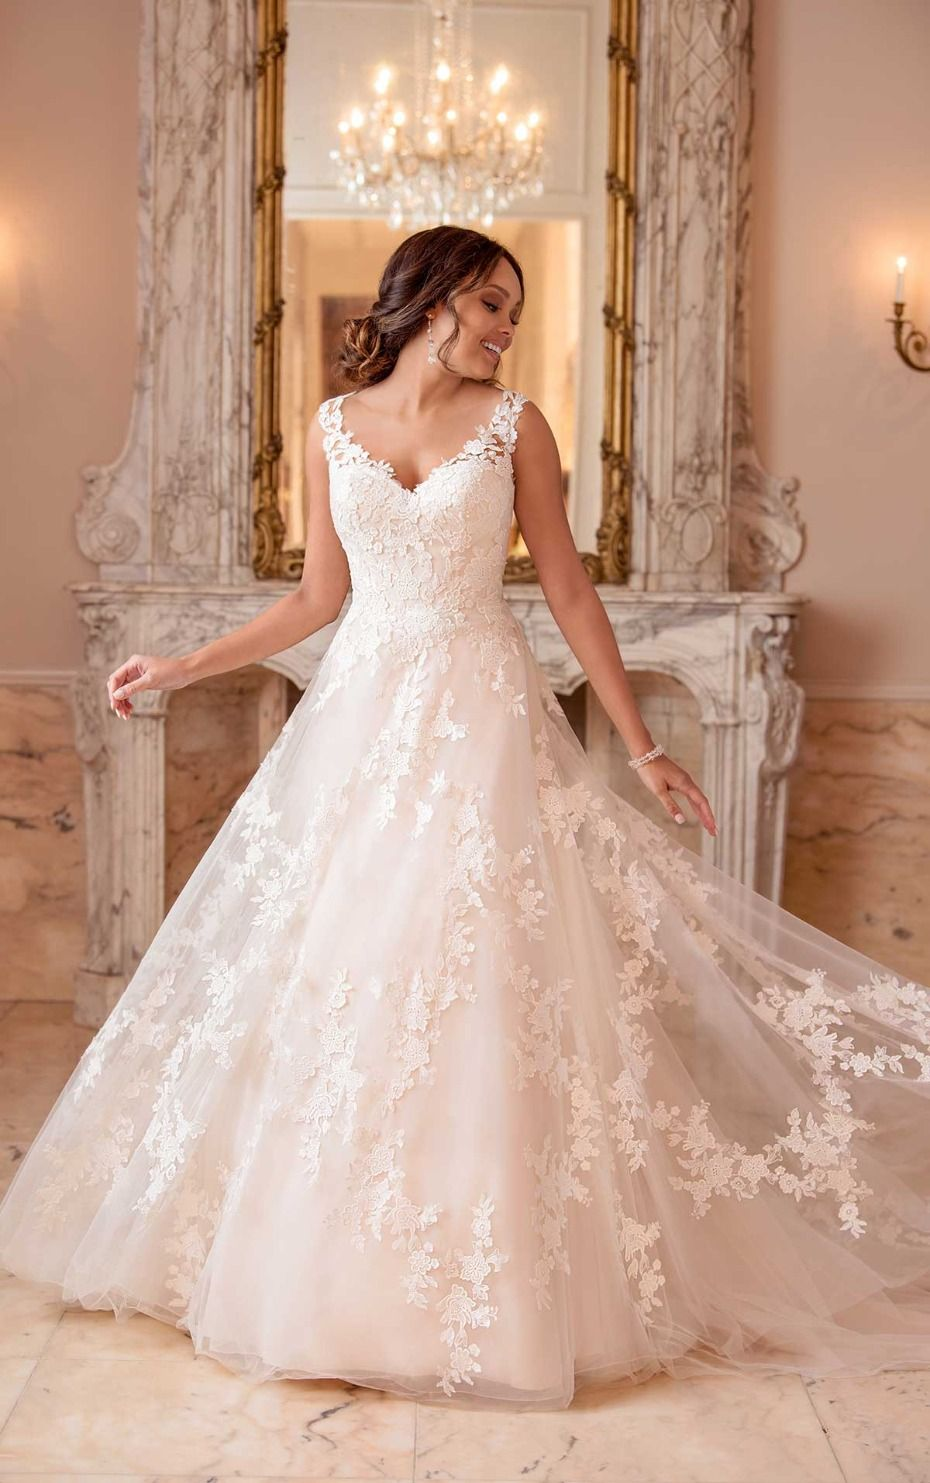 Wedding dress dream meaning  Gwyneth Just Reminded Us How Much We Love Lace  Wedding dresses